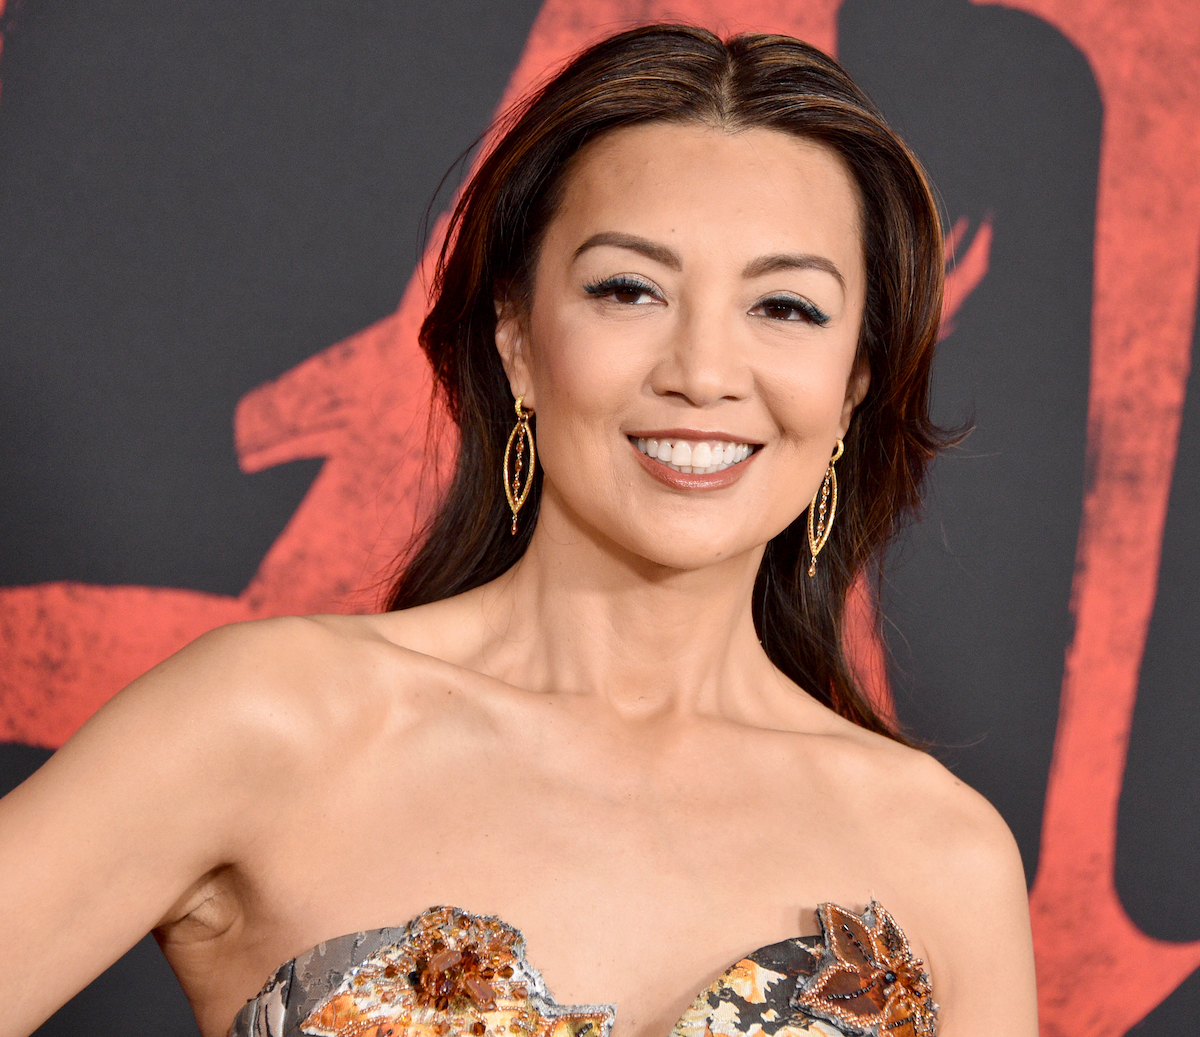 Ming-Na Wen attends the premiere of Disney's 'Mulan' on March 9, 2020, in Hollywood, California